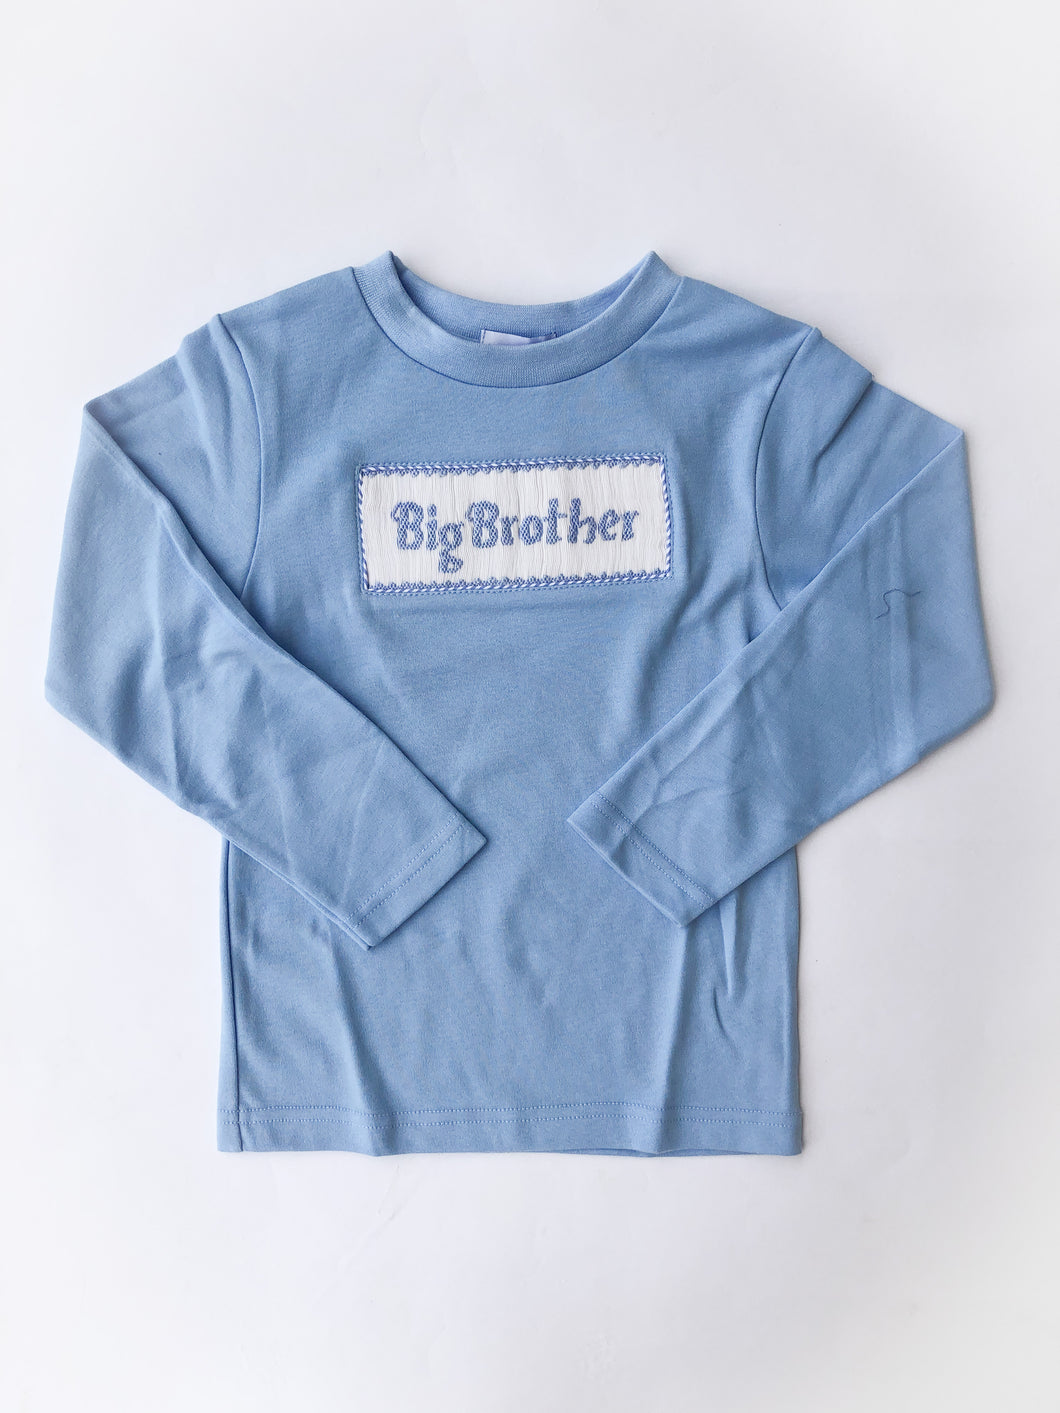 Big Brother Smocked Knit Shirt, Blue - Posh Tots Children's Boutique